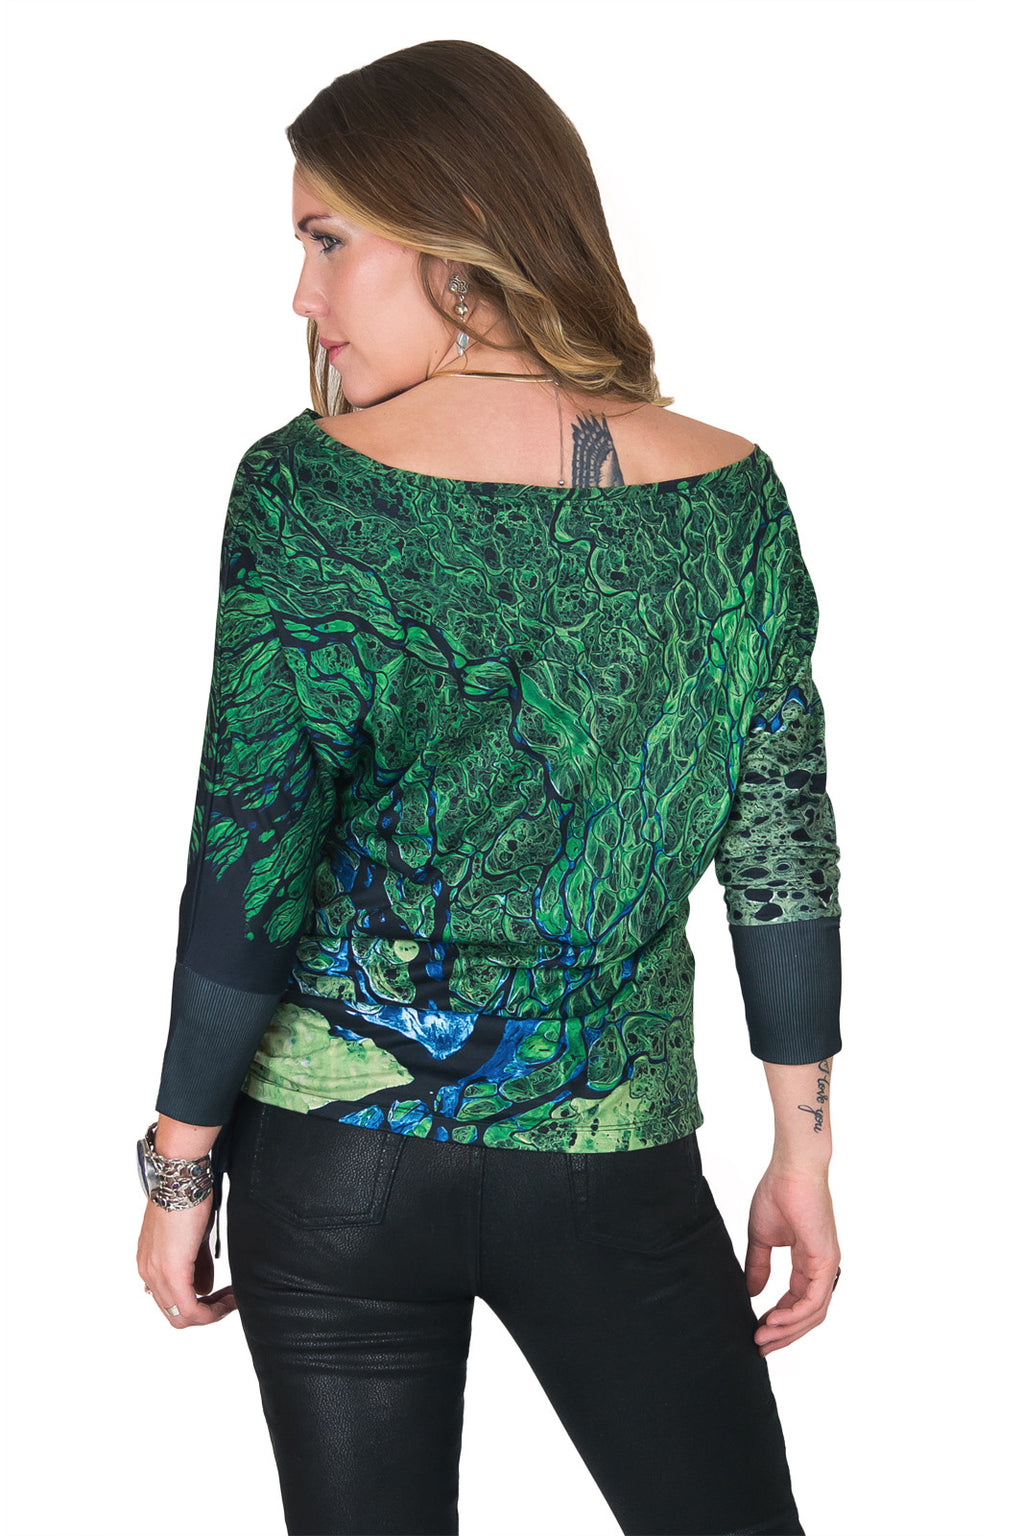 Dolman Top-Explore our Earth Clothing-National Geographic-Lena Delta